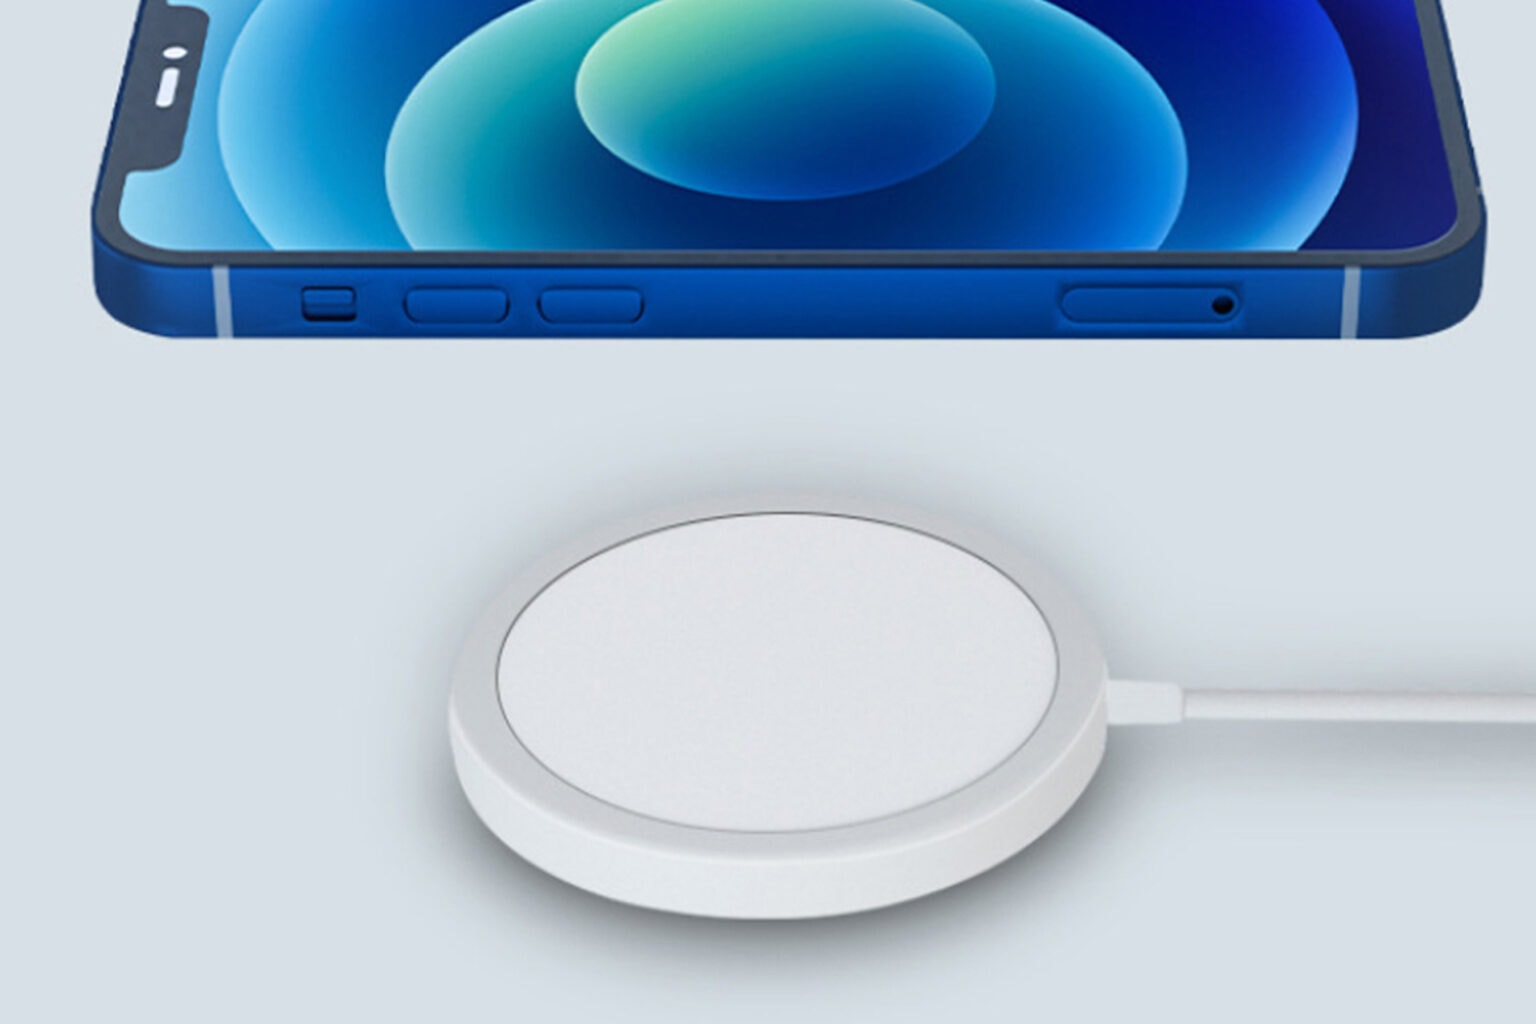 This magnetic wireless charger for iPhone12 is the perfect stocking stuffer